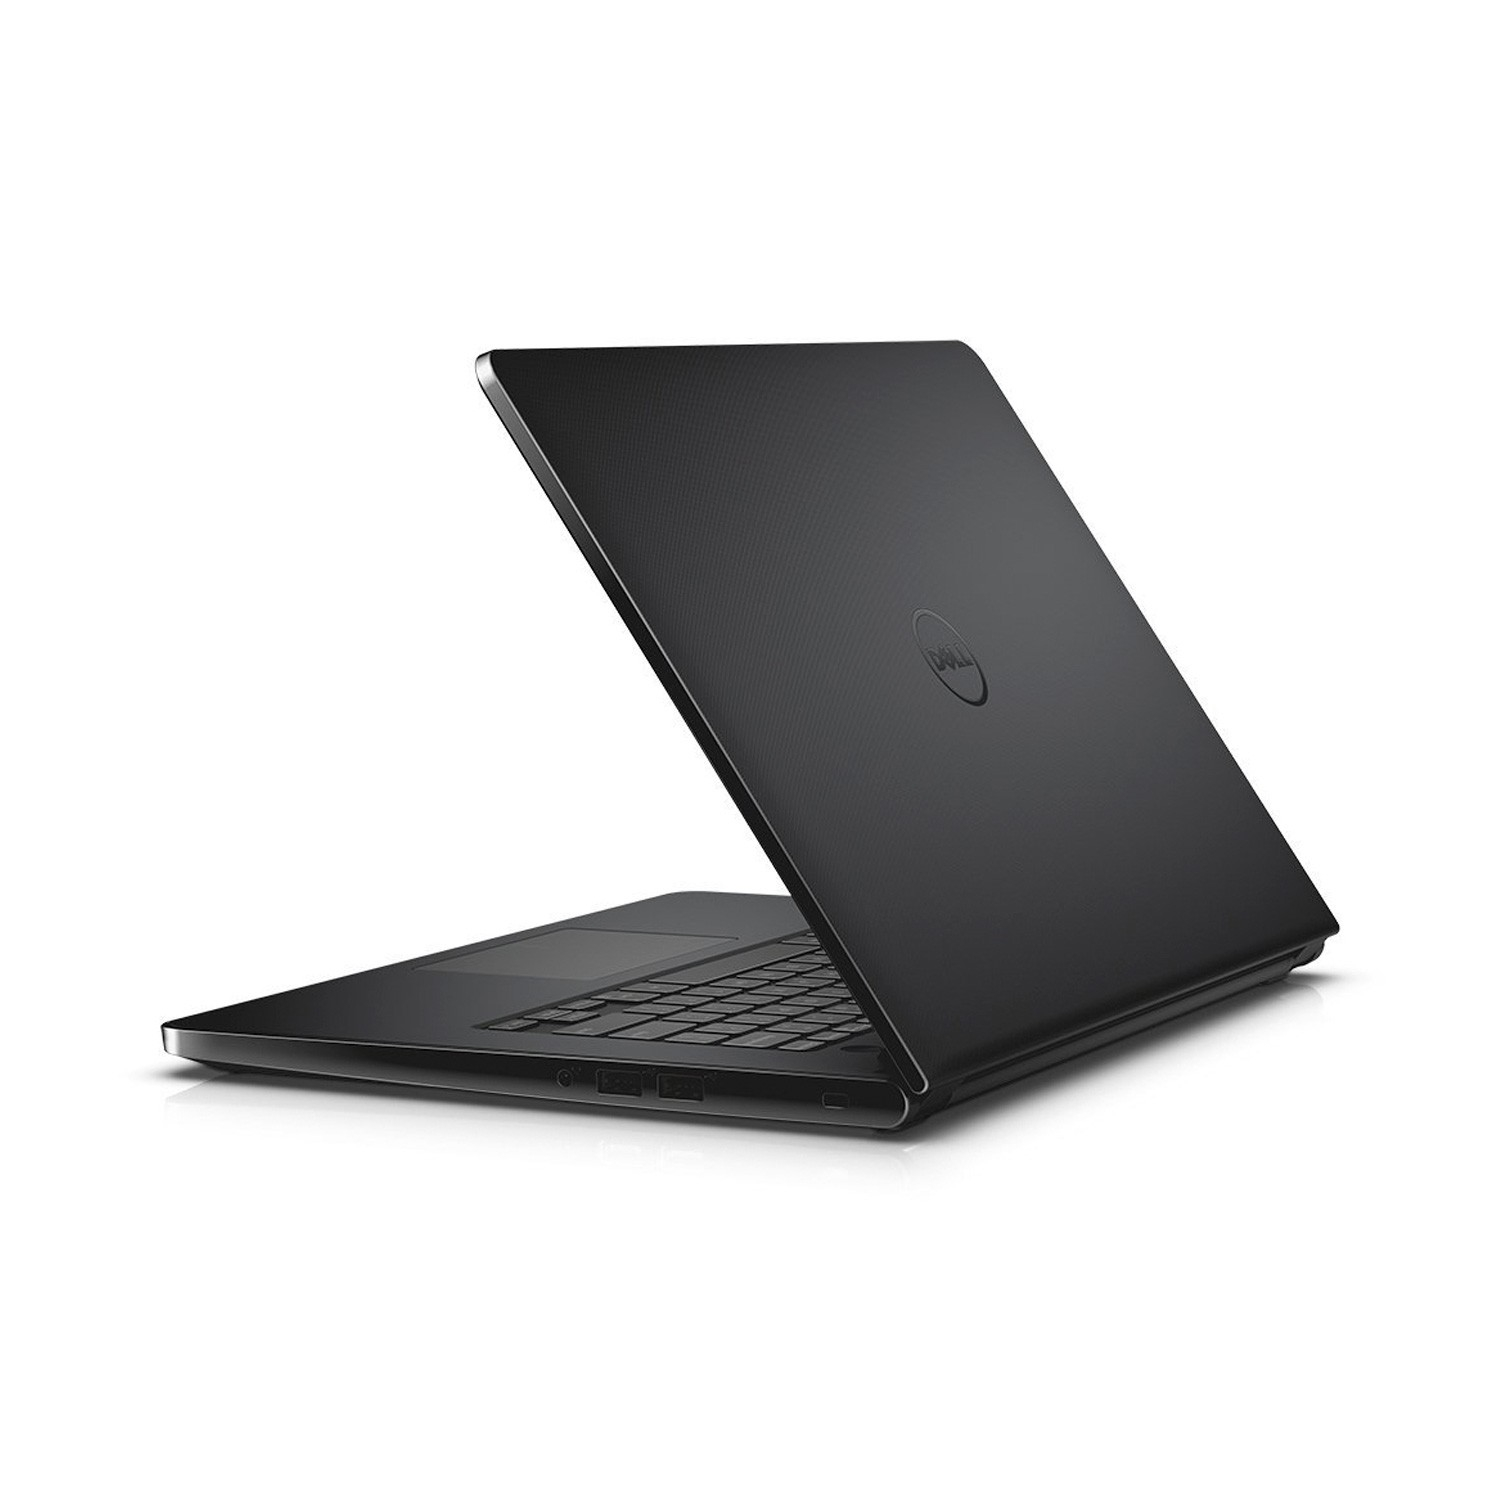 NOTEBOOK DELL INSPIRON 5566 I3 7100U 2.4GHz 3M 8G DDR4 1T VGA INTEL 620 HD 15.6 TOUCH   BLACK OPEN BOX بطاريه ساعتين ,Used Laptops